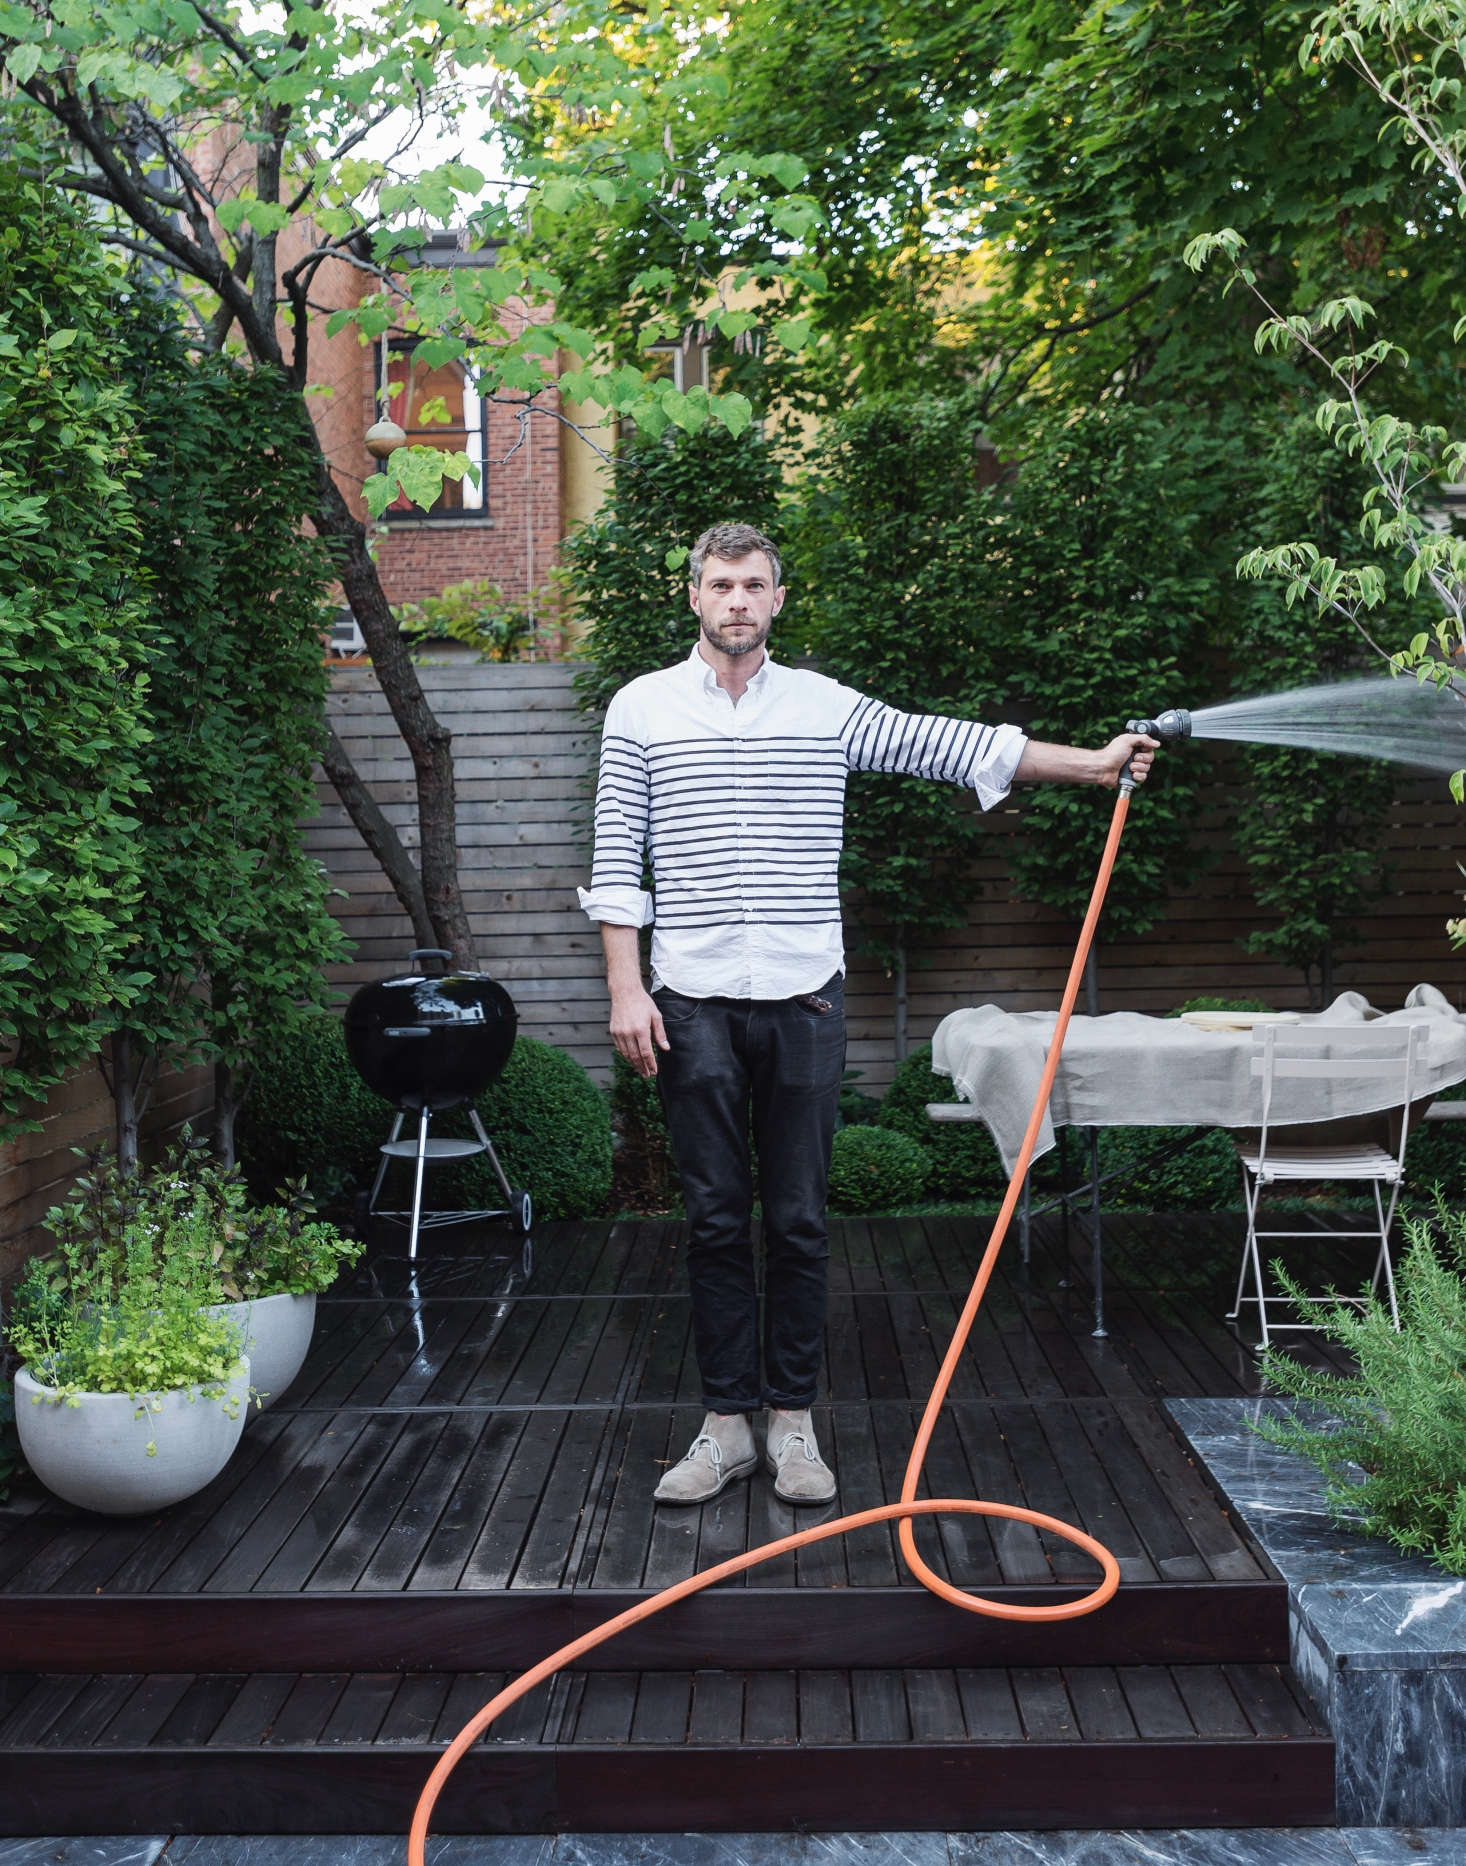 Designer Brook Klausing in a Brooklyn backyard. See more of this garden in our Gardenista book. Photograph by Matthew Williams for Gardenista.